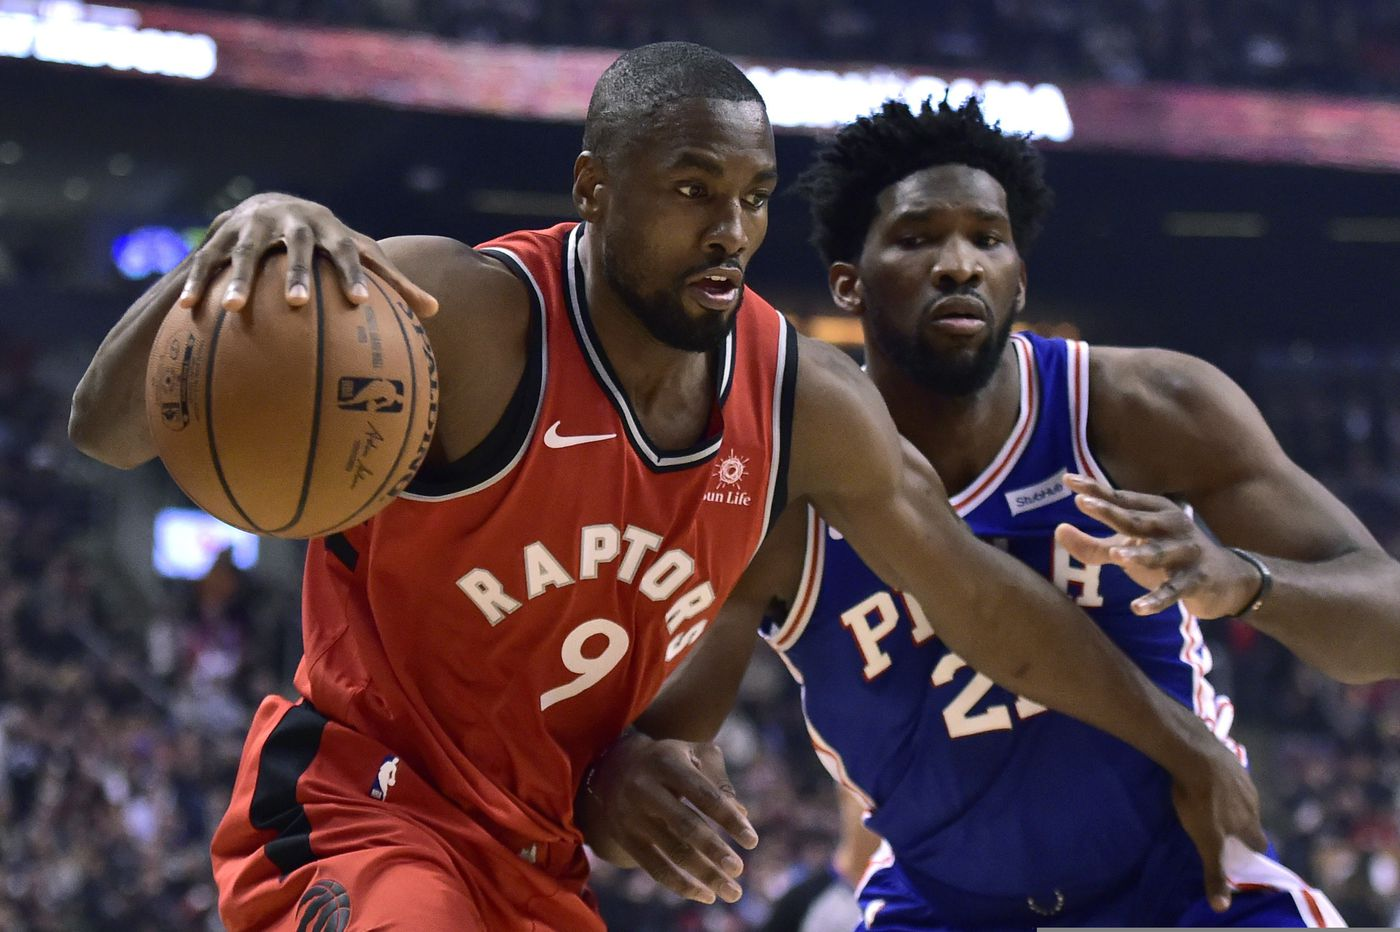 Sixers podcast: Philly still falling short of being serious NBA title contender